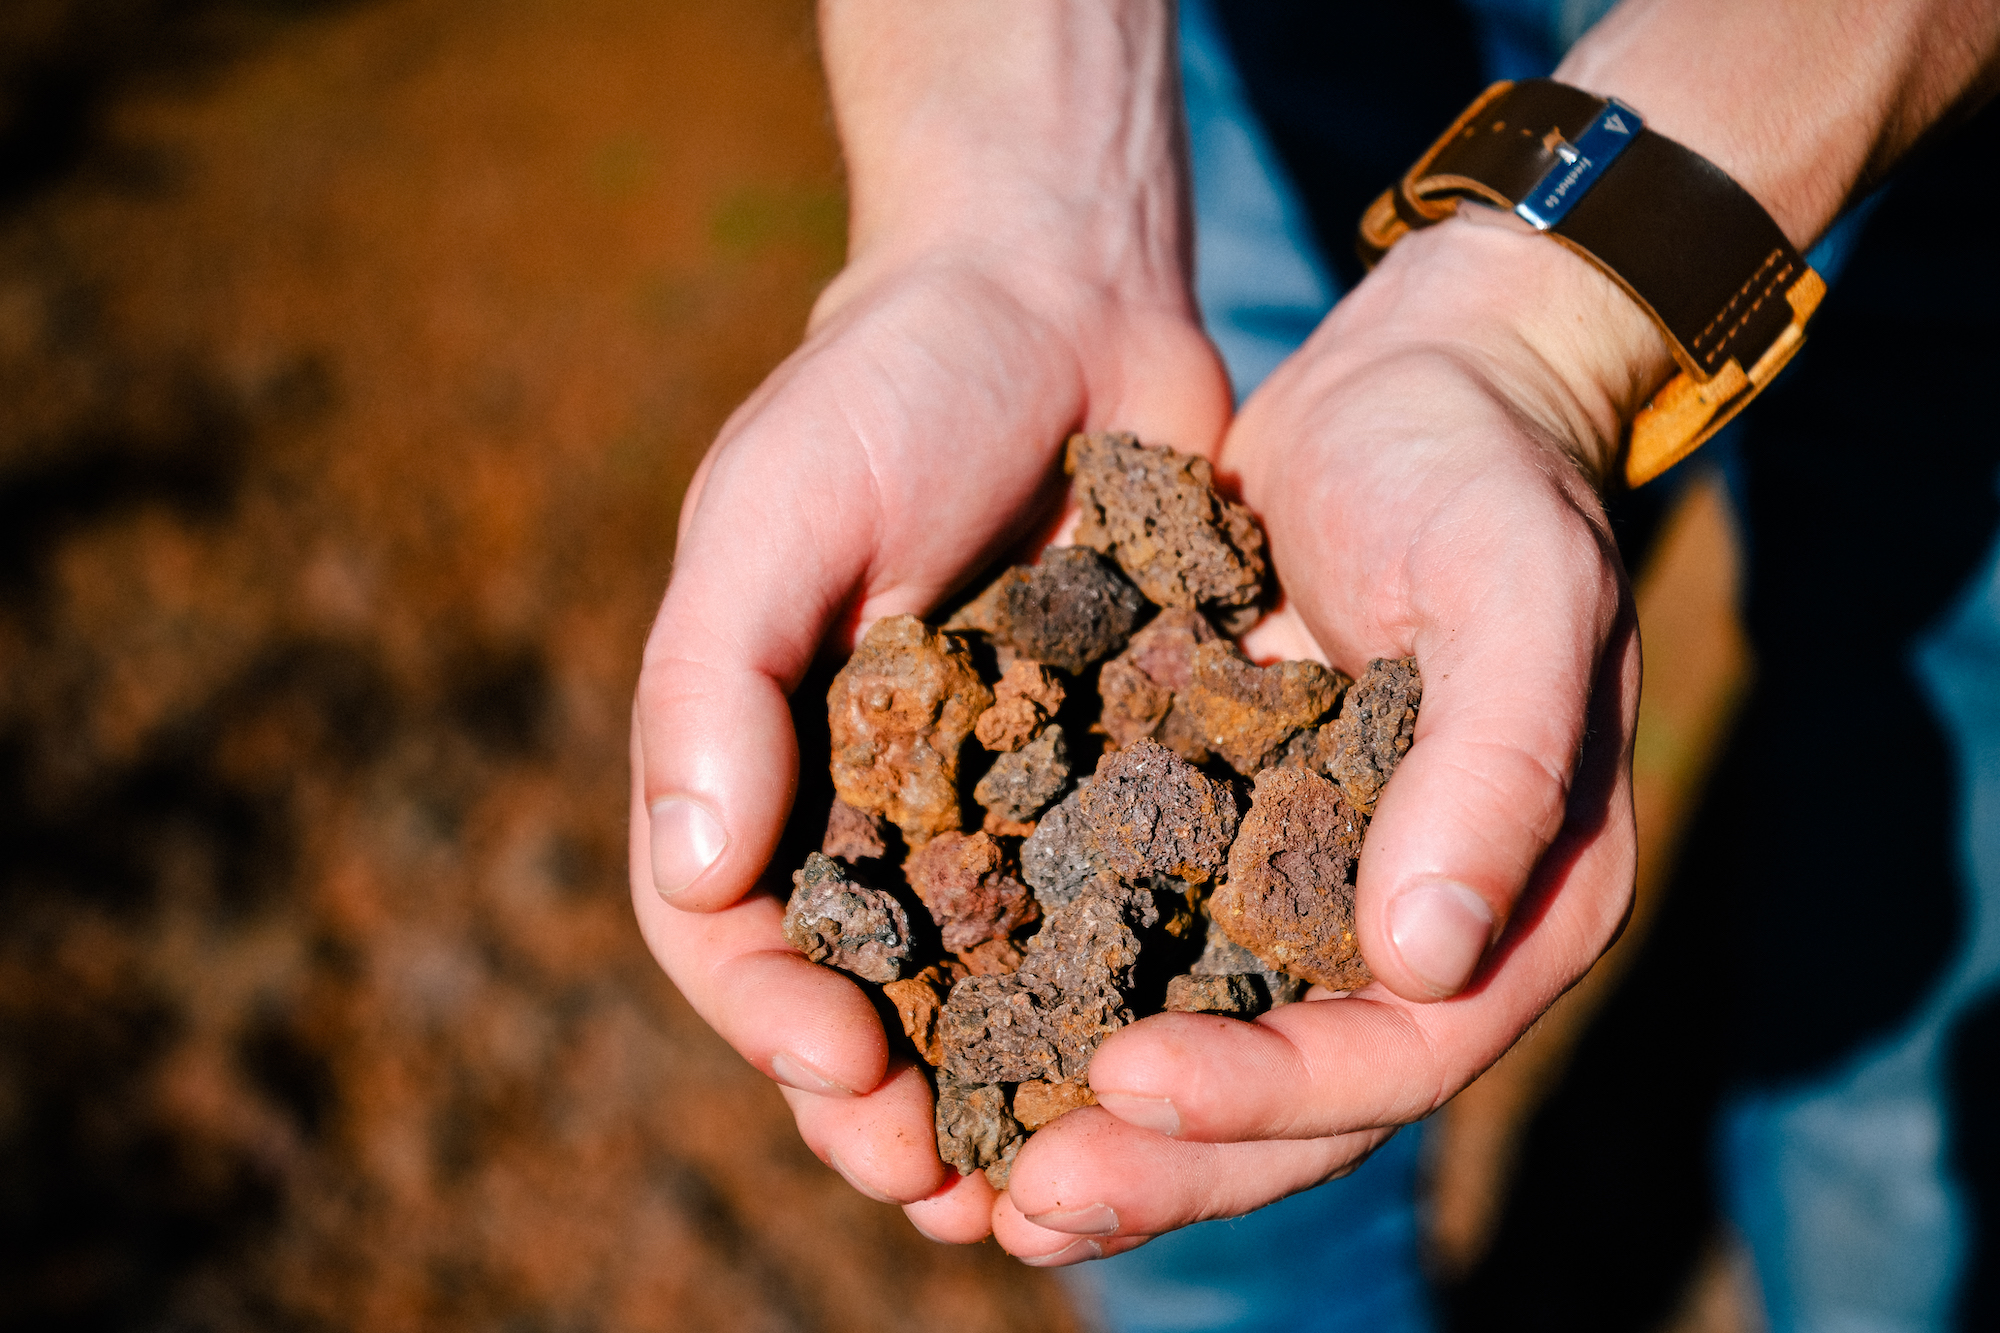 holding some of the volcanic rock